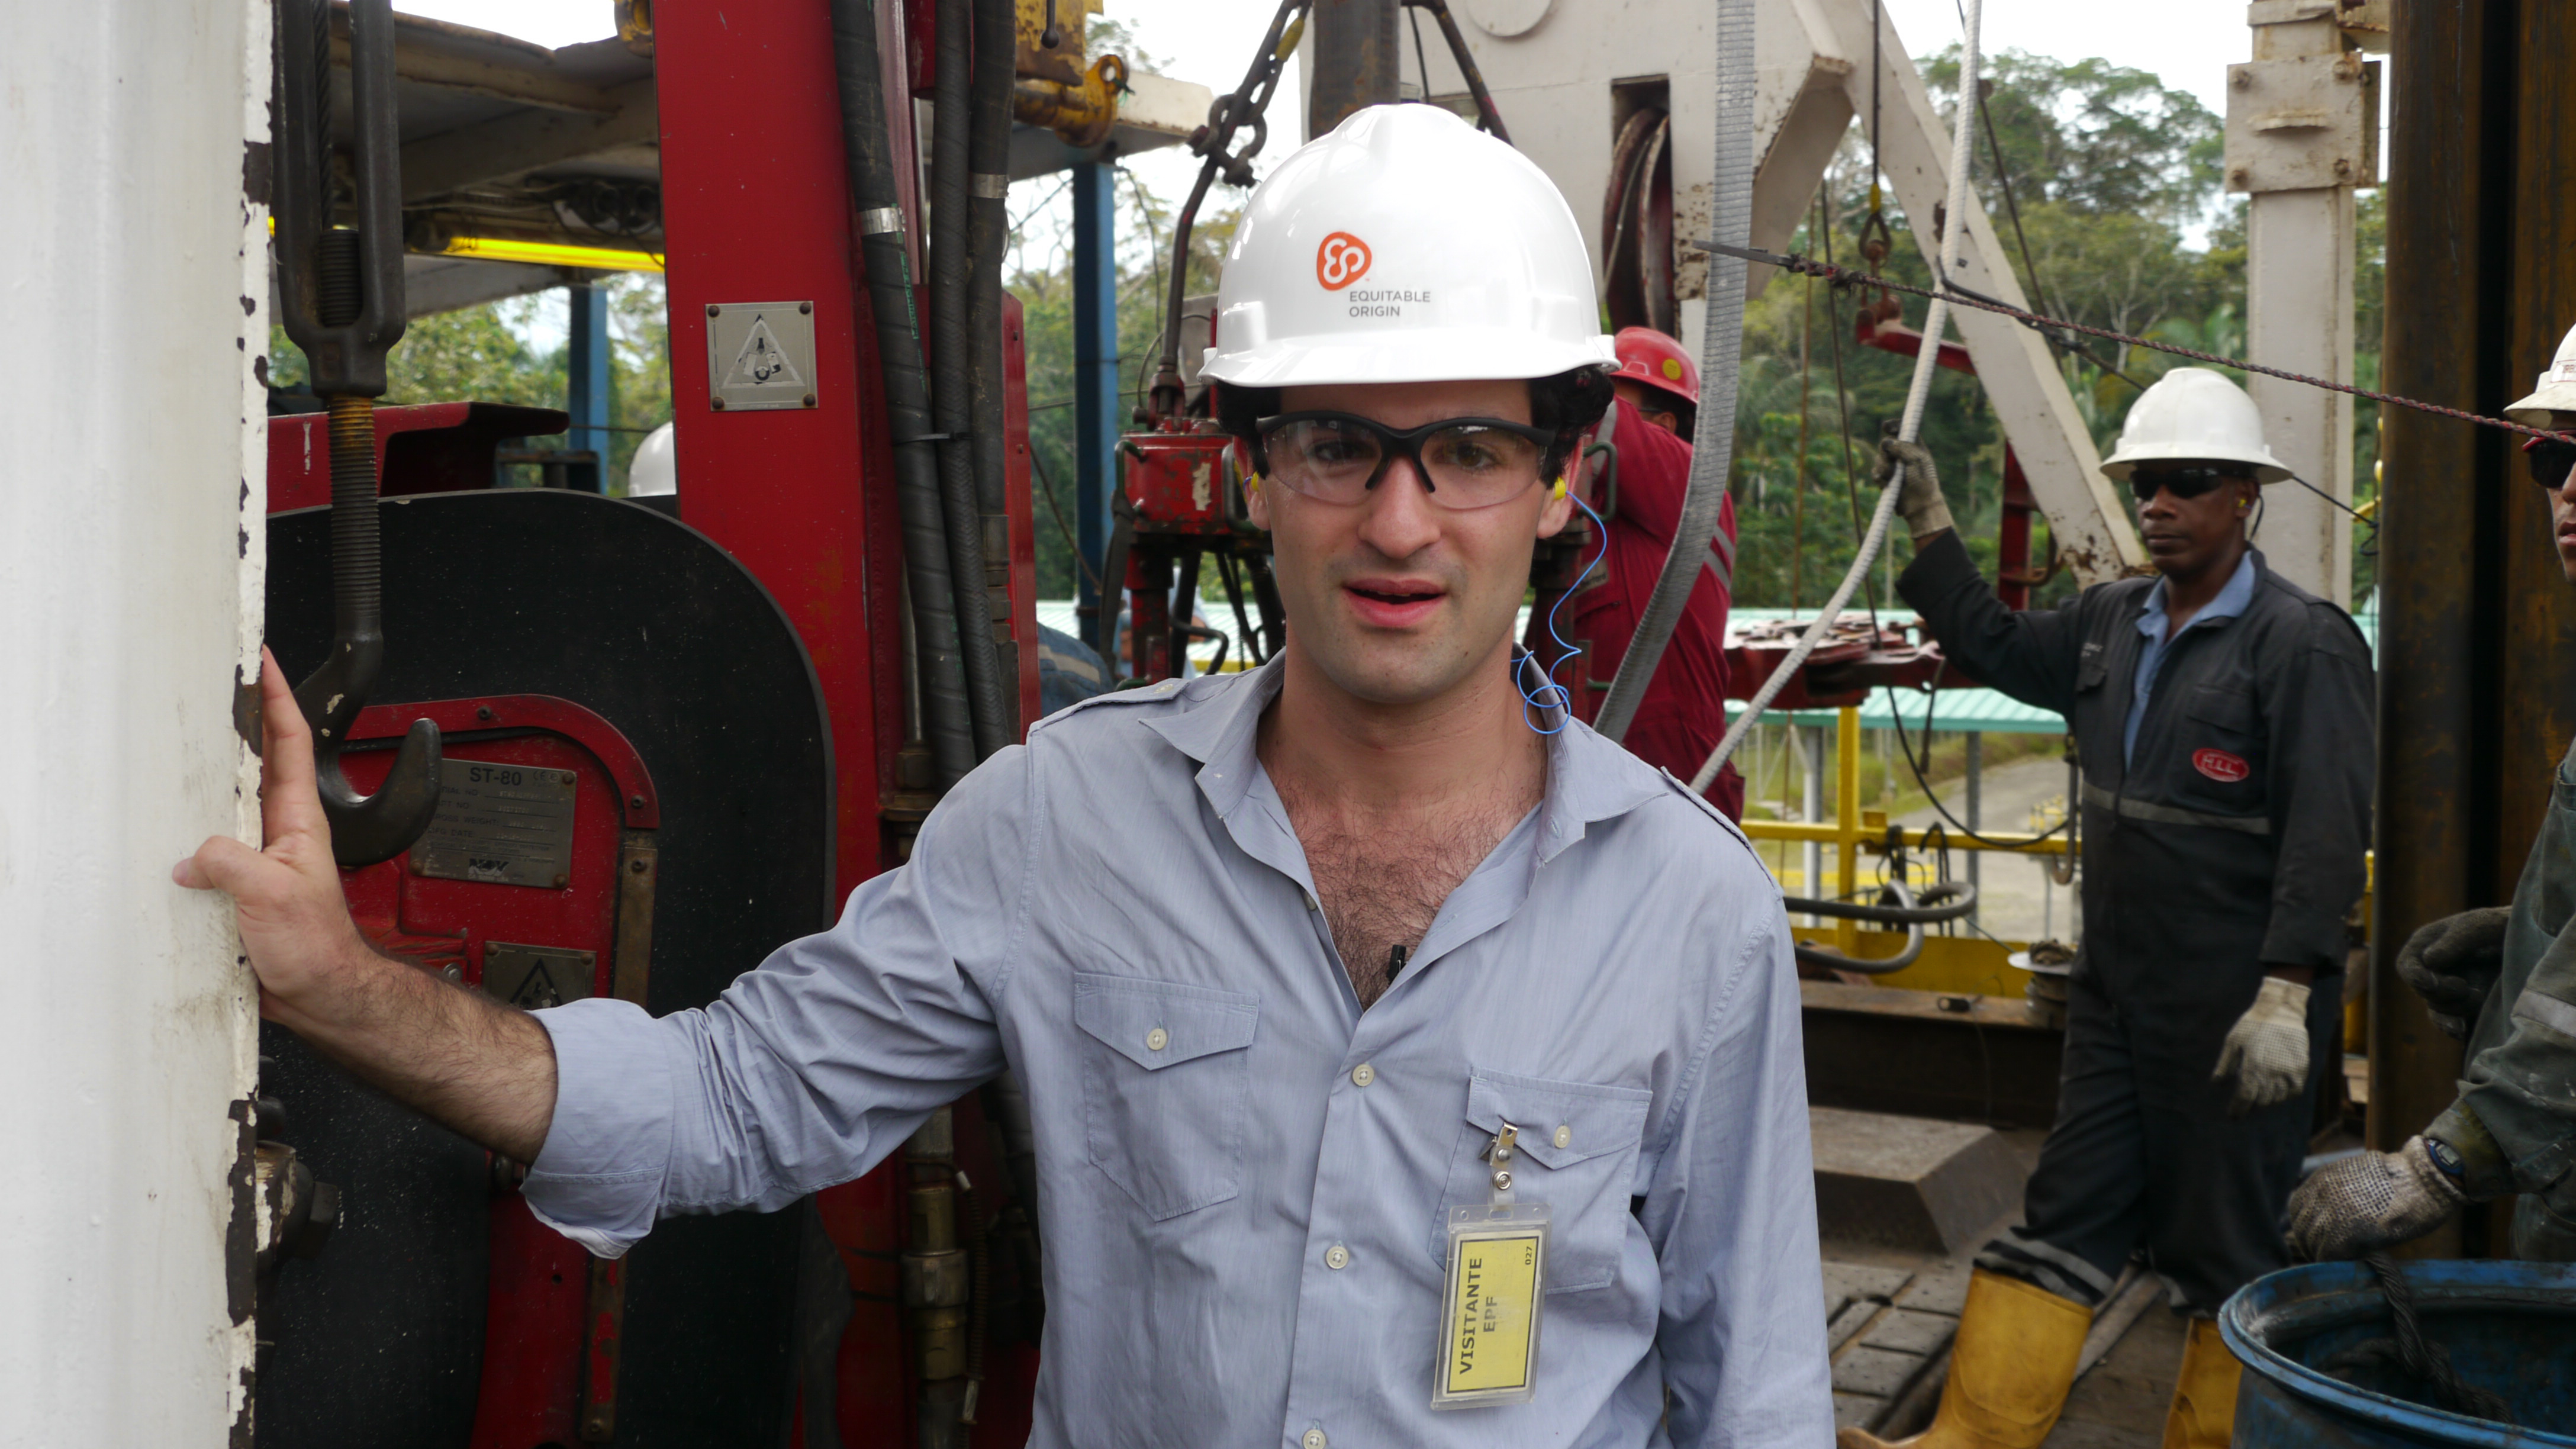 Young Entrepreneurs Develop Eco-Standard for Oil and Gas Biz